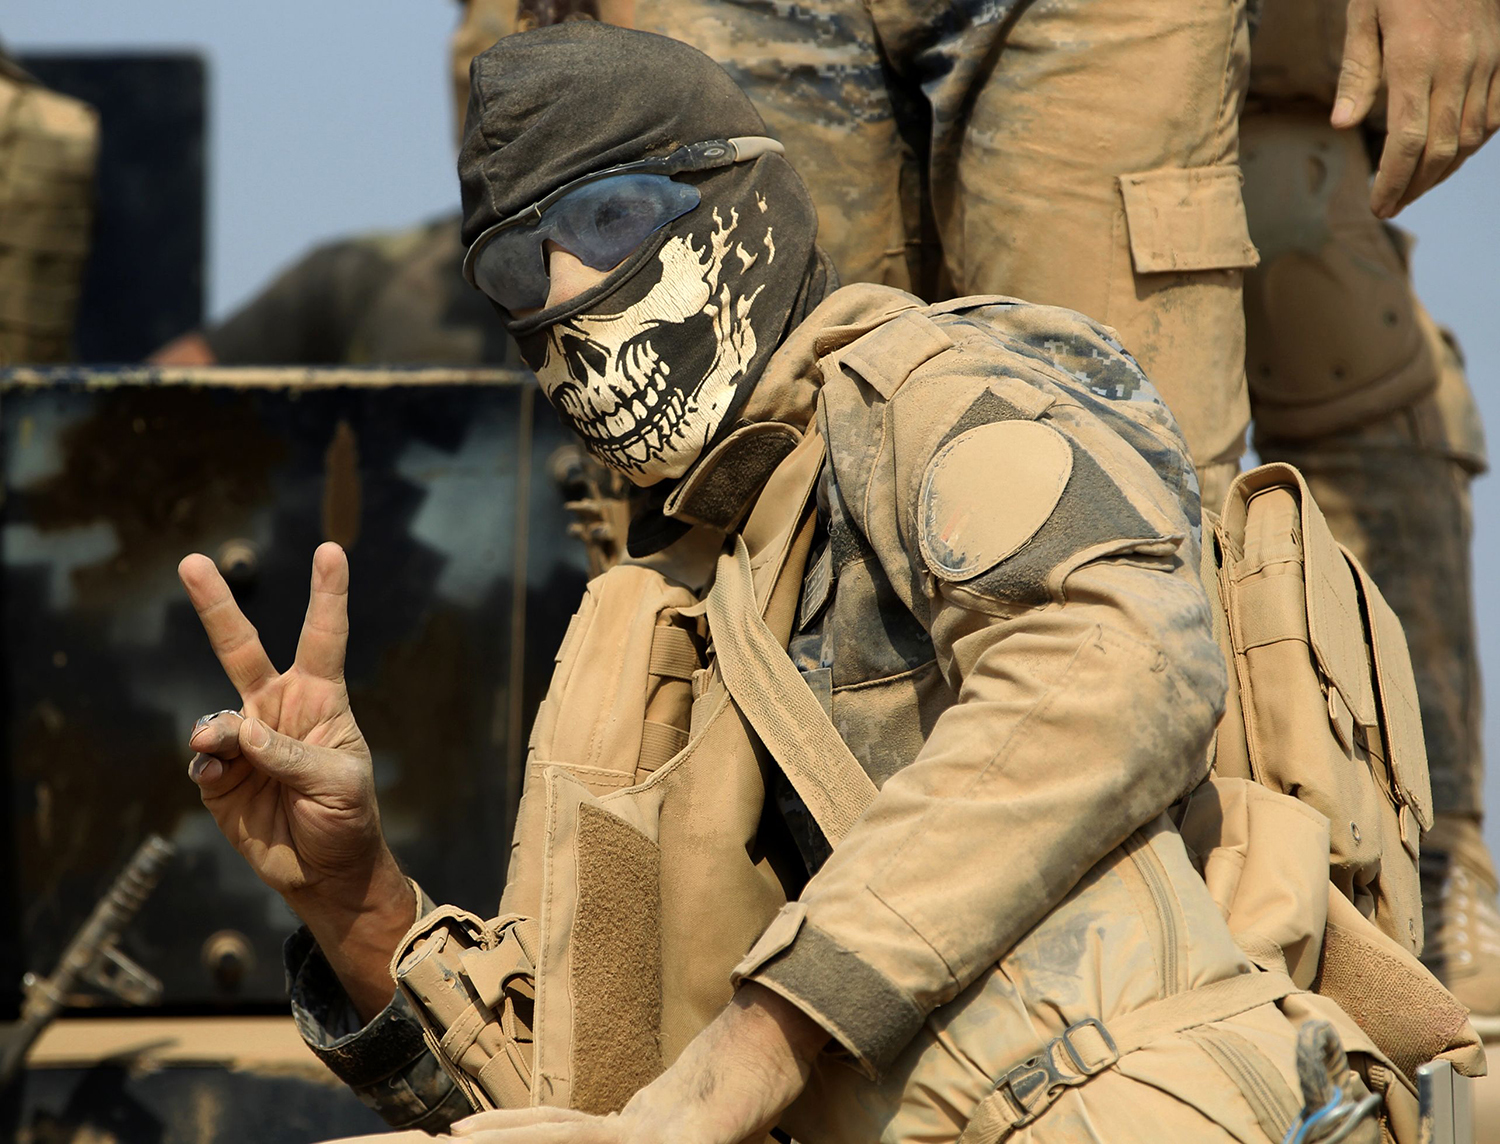 TOPSHOT - A member of the Iraqi government forces flashes the sign for victory as they enter the village of al-Khuwayn, south of Mosul, after recapturing the village from Islamic State (IS) group jihadists on October 23, 2016, in part of an ongoing operation to tighten the noose around Mosul and reclaim the last major Iraqi city under IS control. / AFP PHOTO / AHMAD AL-RUBAYE / TT / kod 444